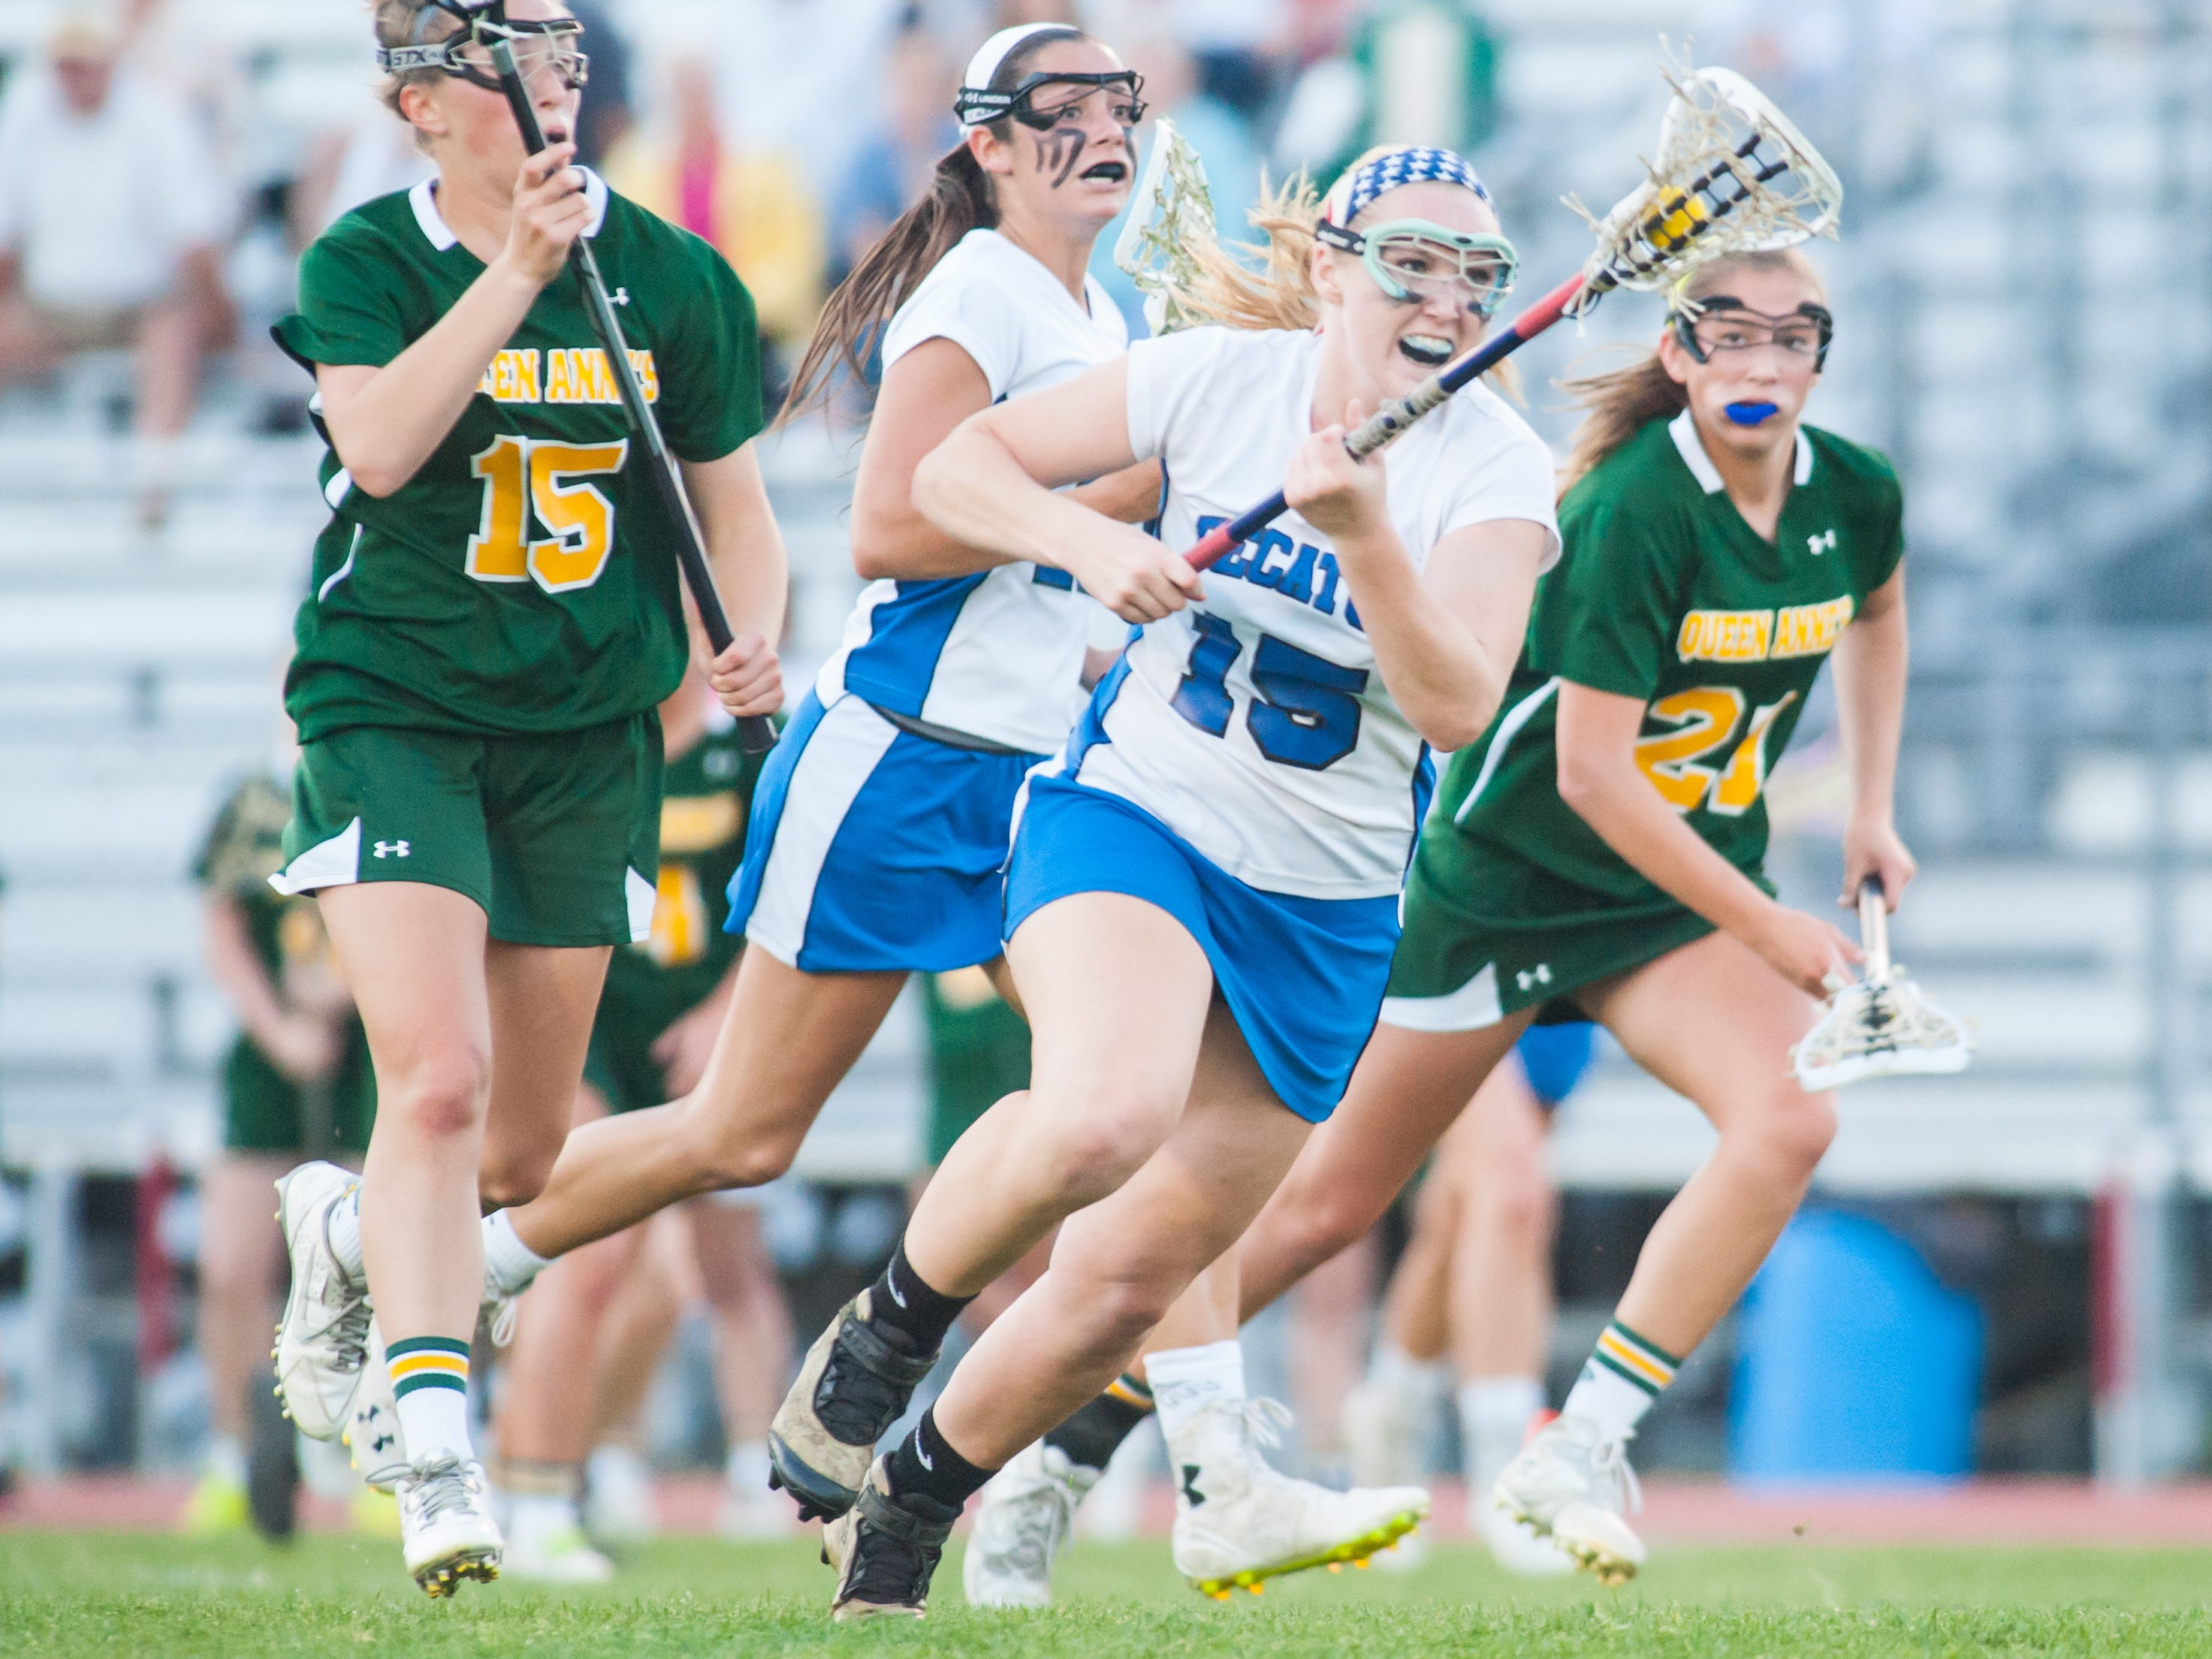 Stephen Decatur midfielder Elle Bargar (15) fights to the offensive zone against Queen Annes' on Tuesday evening at Wicomico County Stadium in the Bayside Girls Lacrosse Championship.